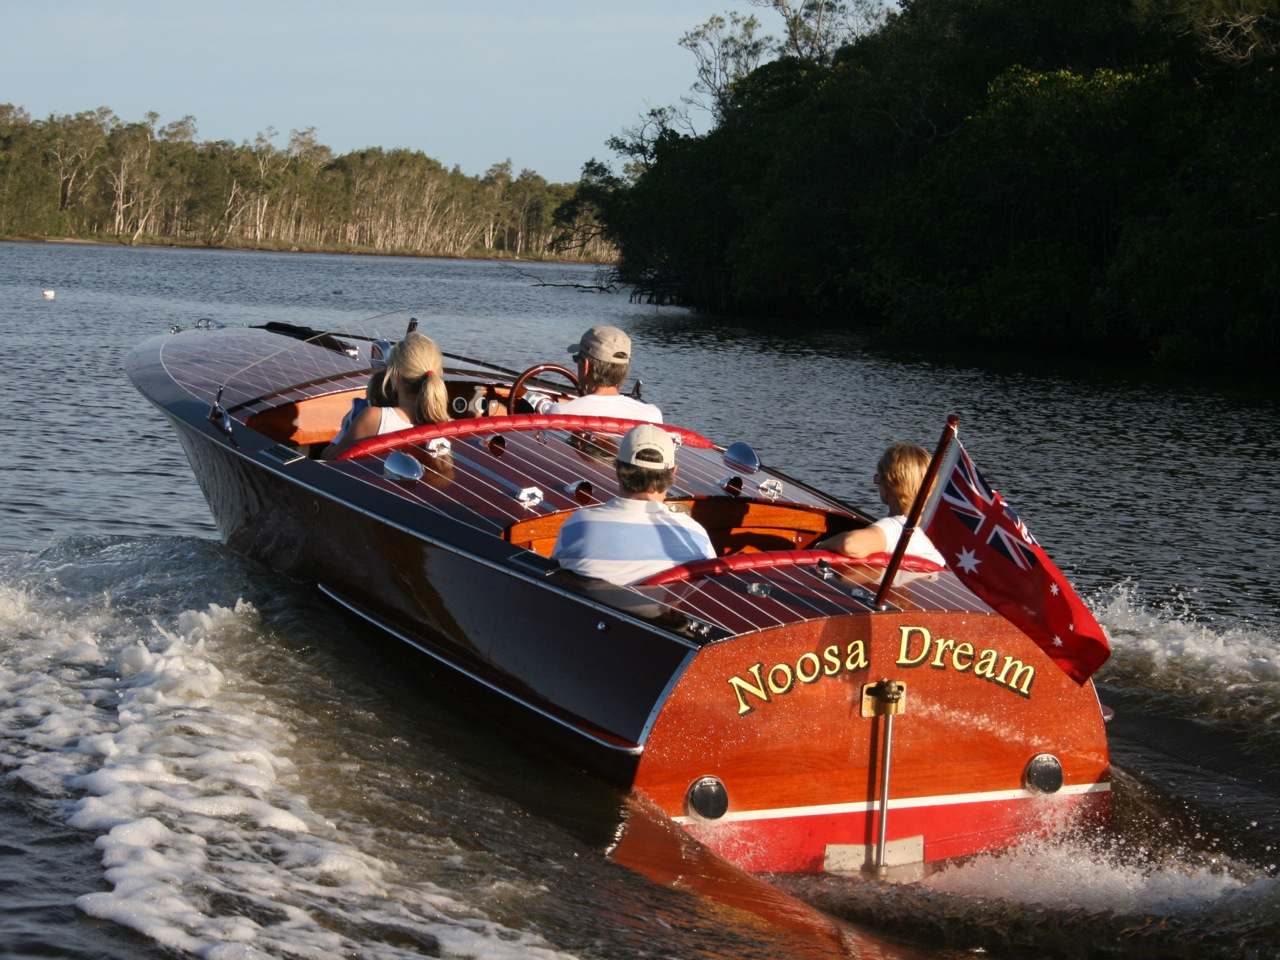 Classic wooden power boat Noosa Dream